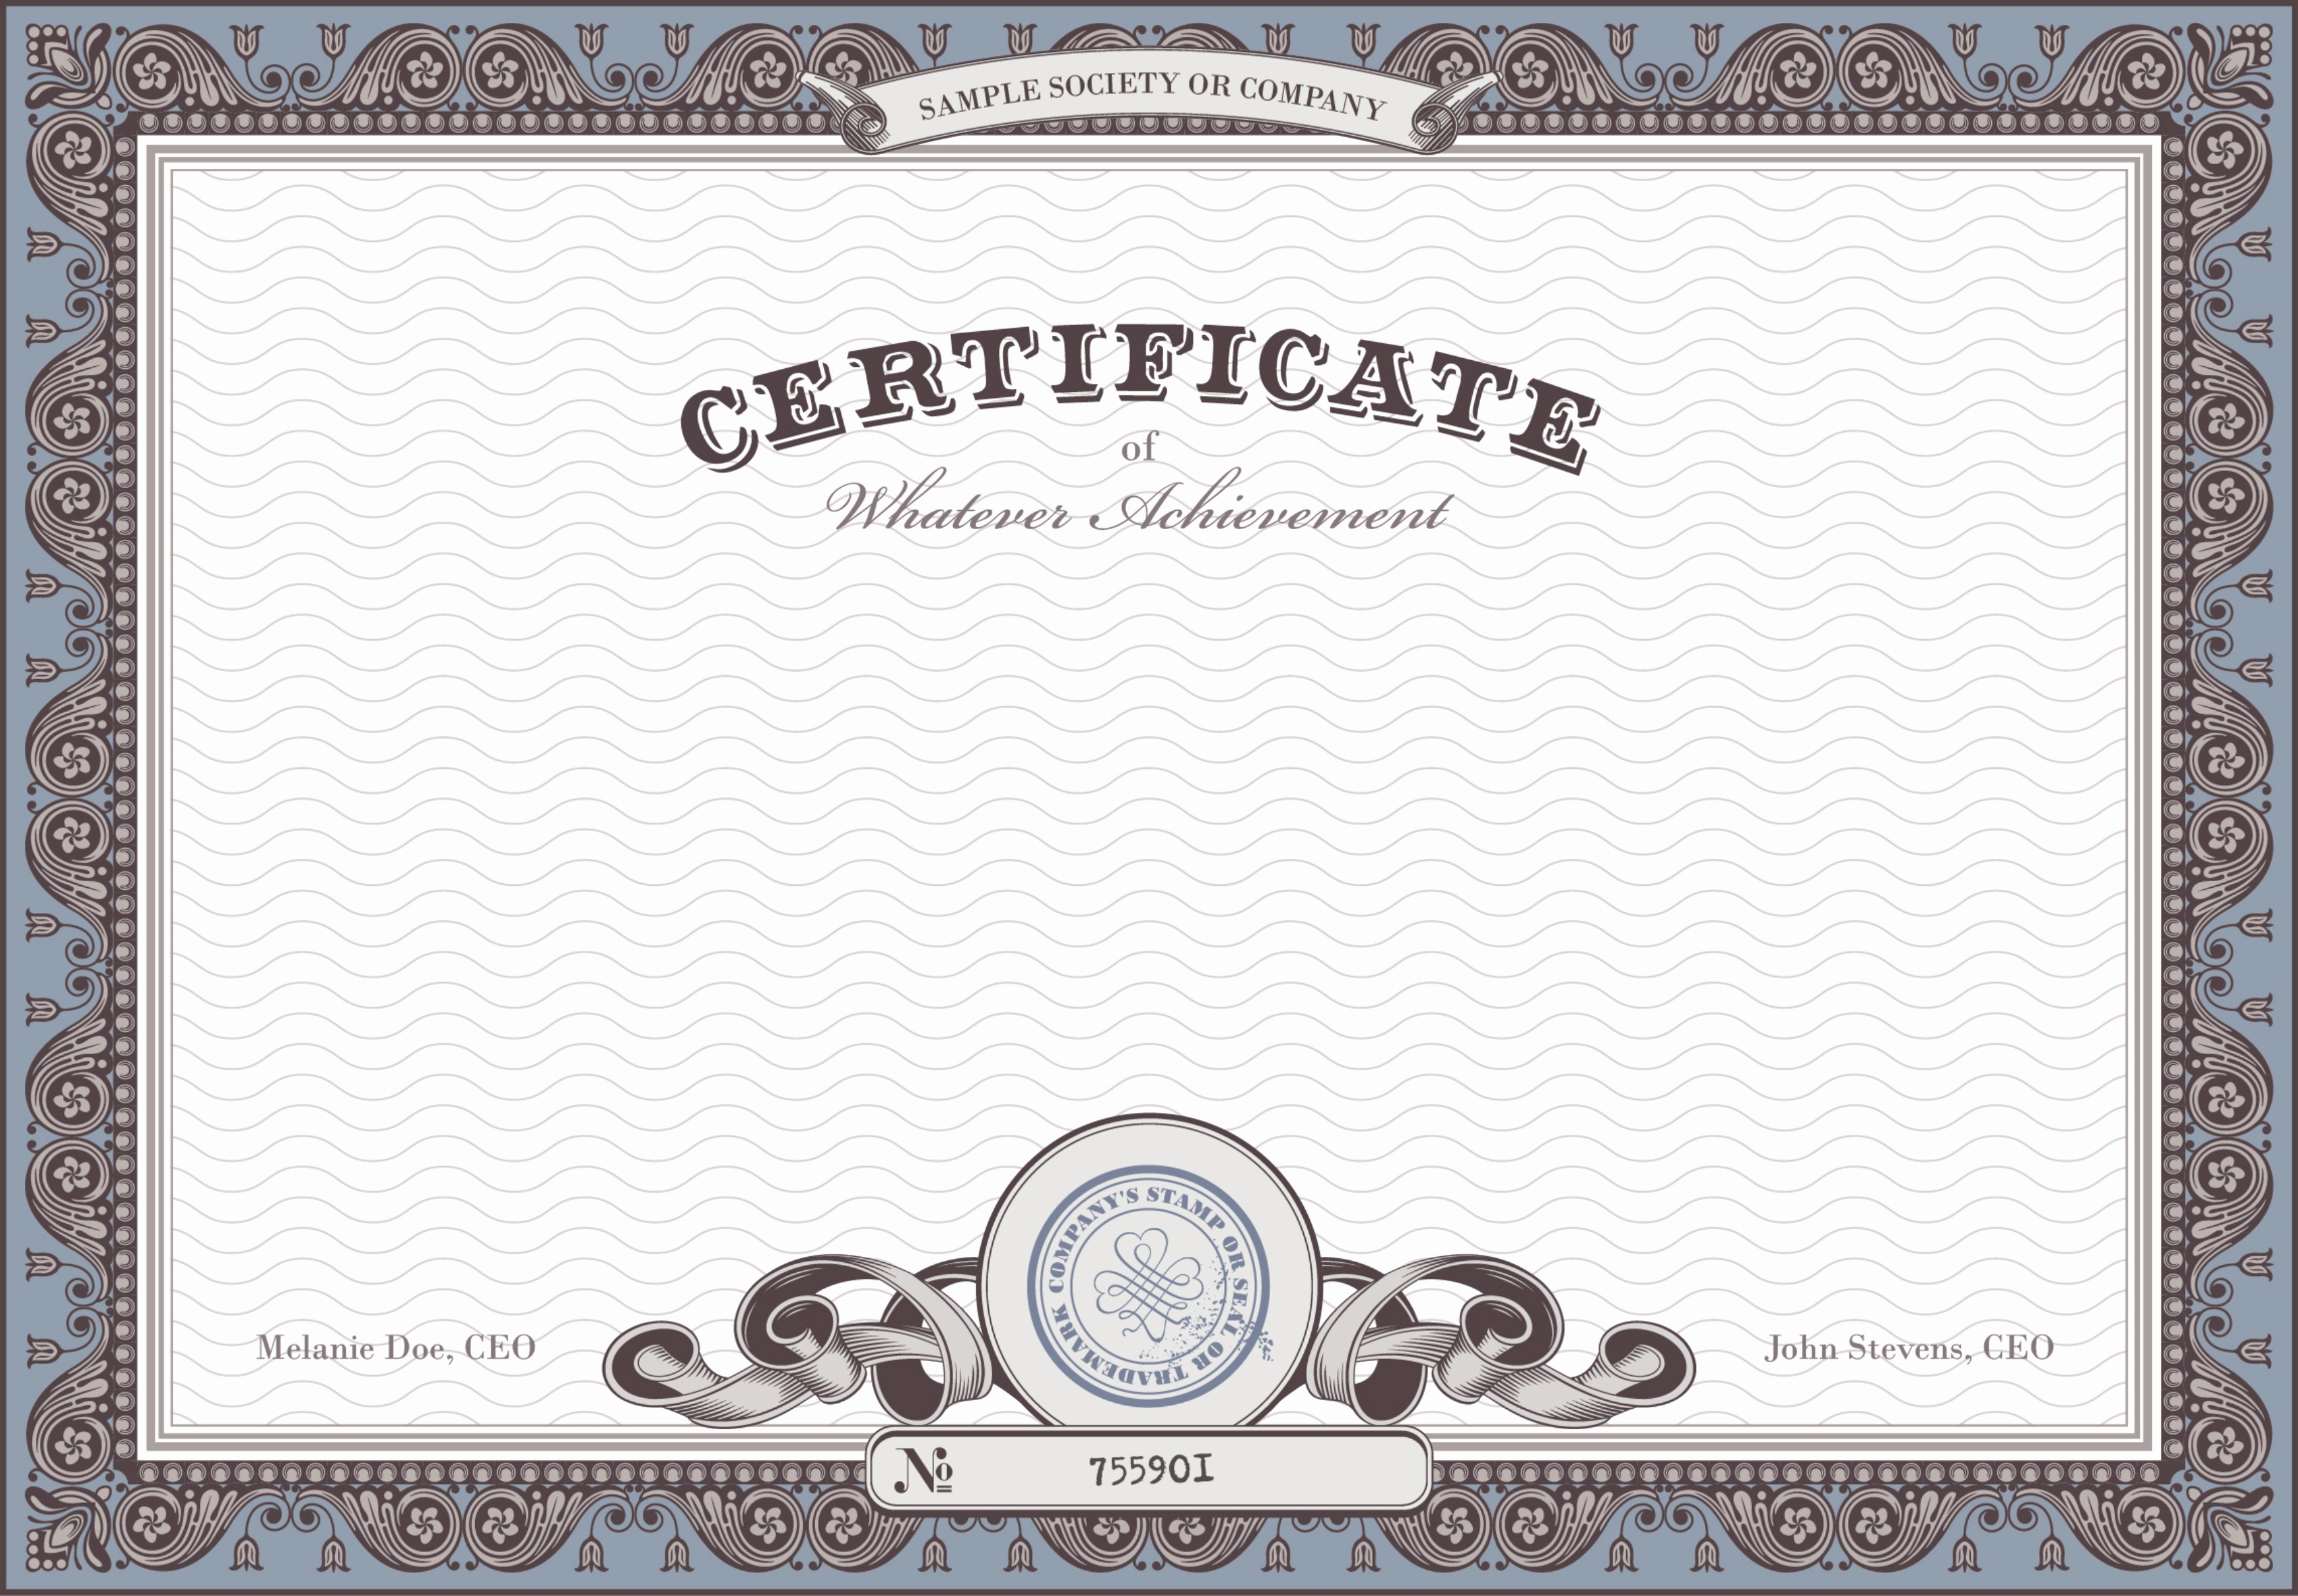 Certificate Background Design Free Download Fresh Certificate Background Material Pattern Honor Certificate